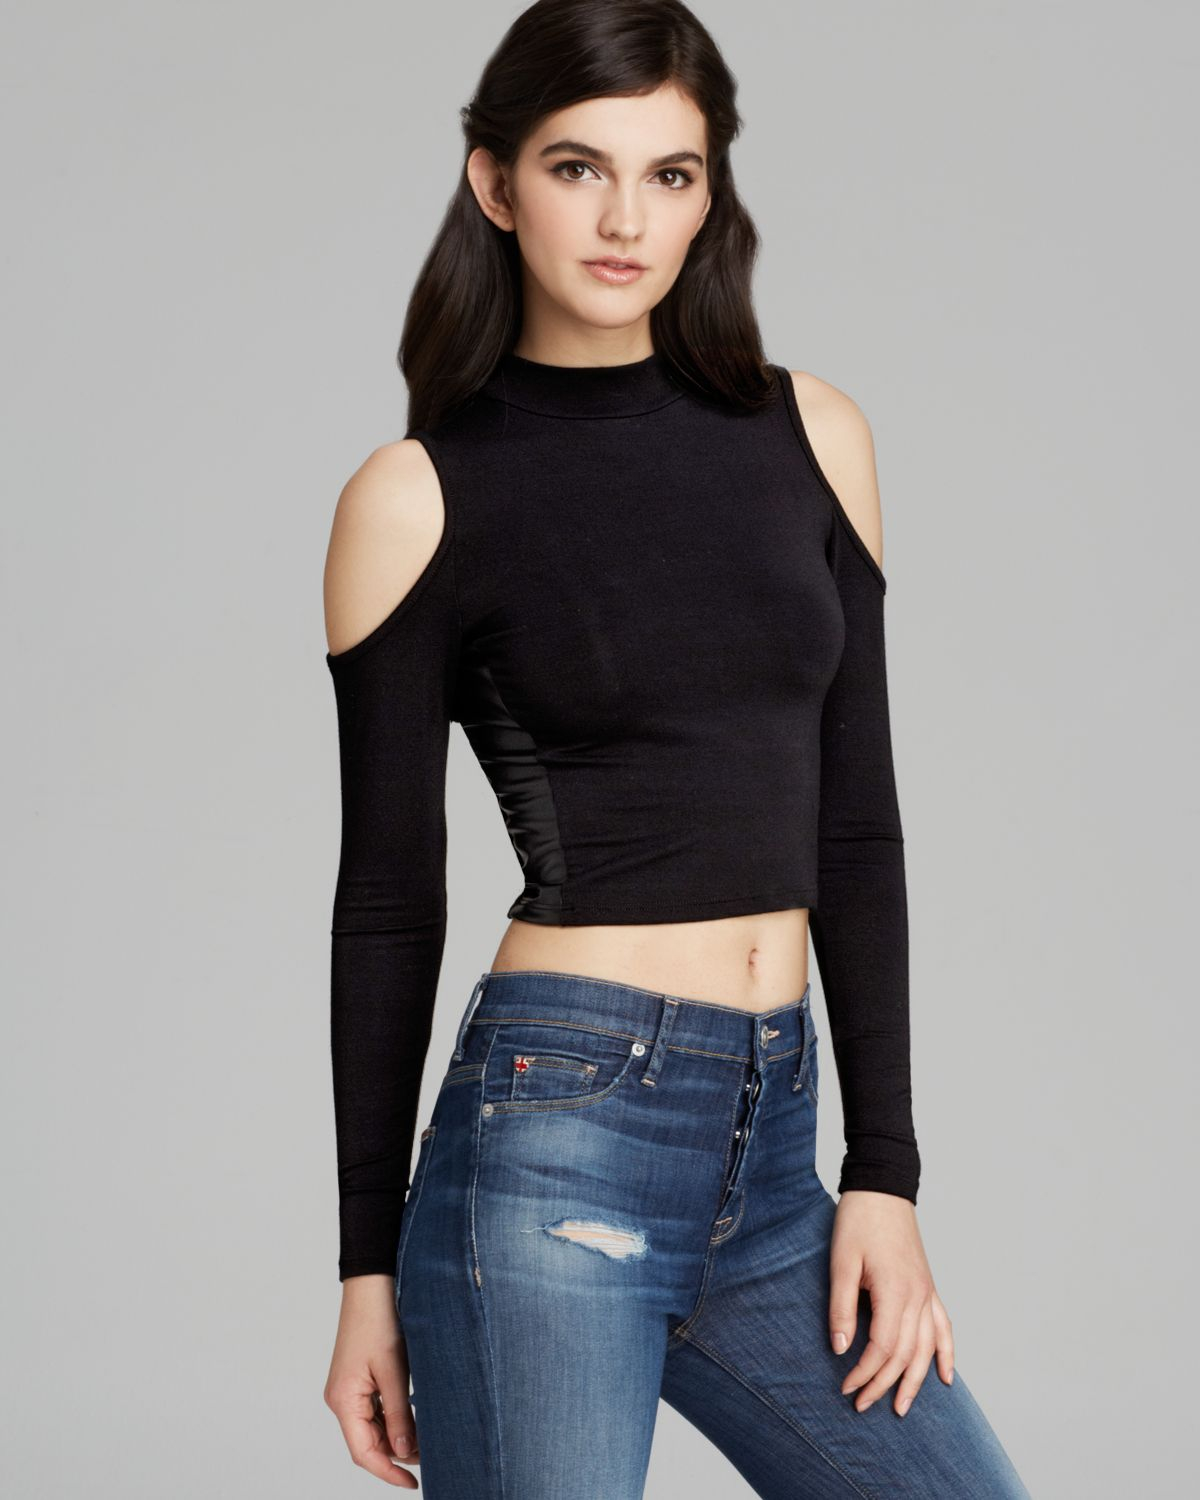 c9a2c0295be82 Lyst - Guess Top Cold Shoulder Crop in Black